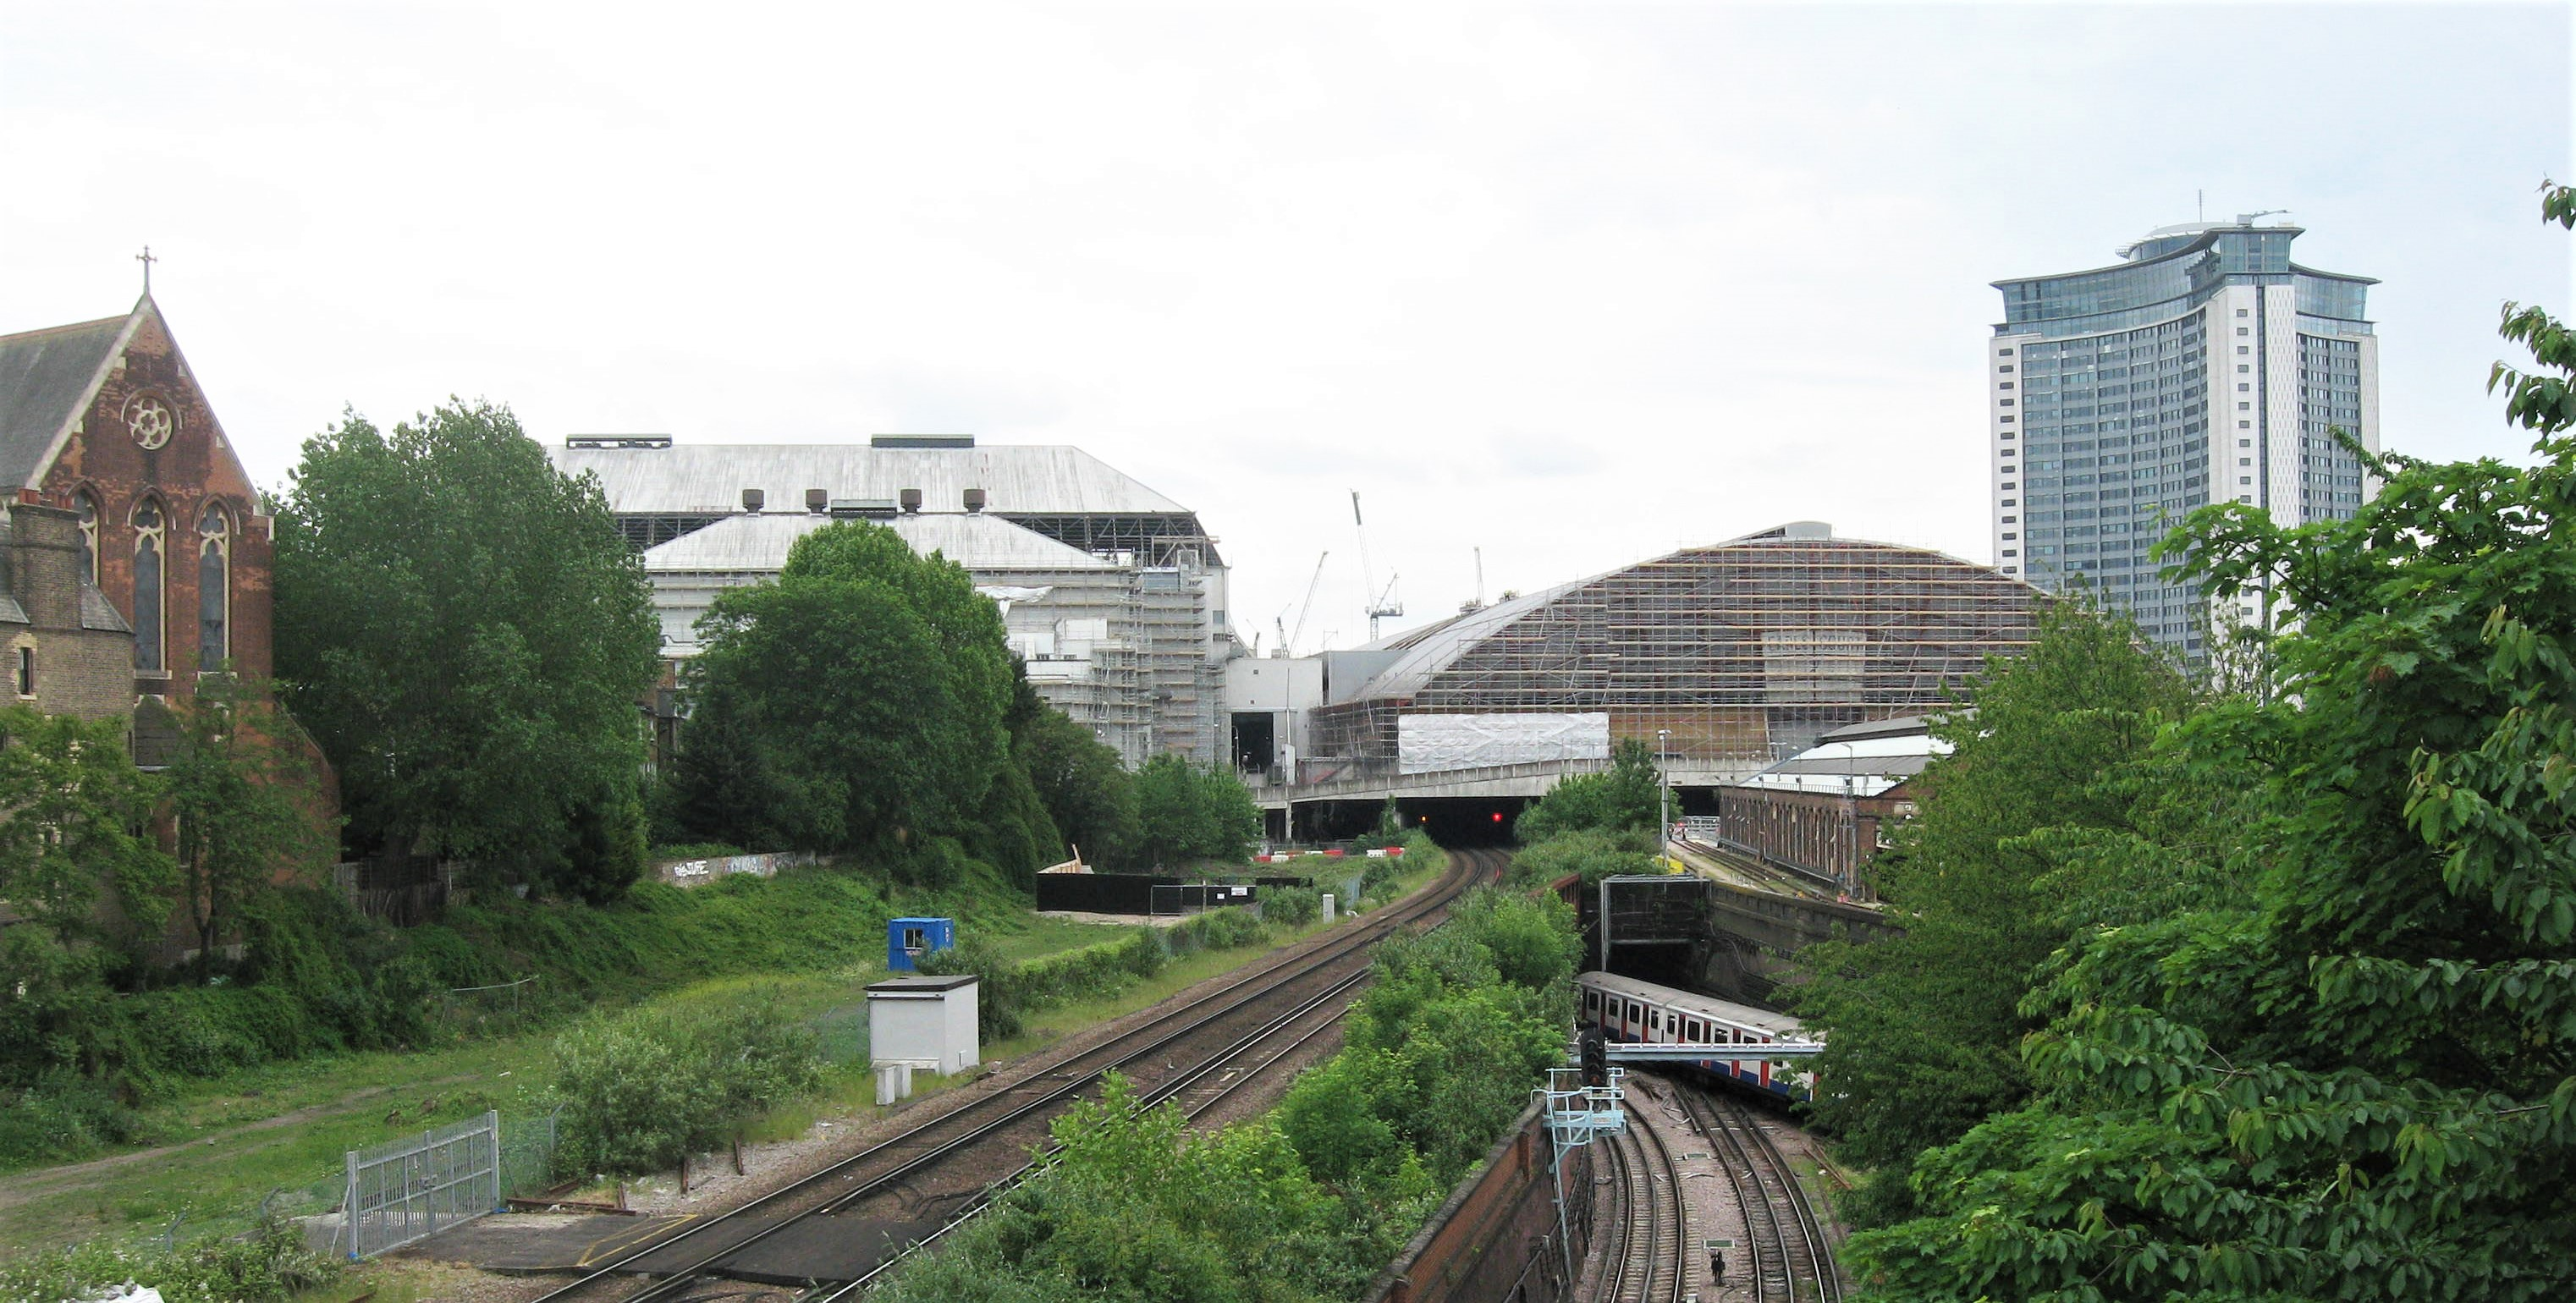 Earl's Court Demolition in progress, general view from Cromwell Road Flyover in June 2015 with original 1936 'Earl's Court 1' on left and 1990 'Earl's Court 2' on right, both sheeted for demolition